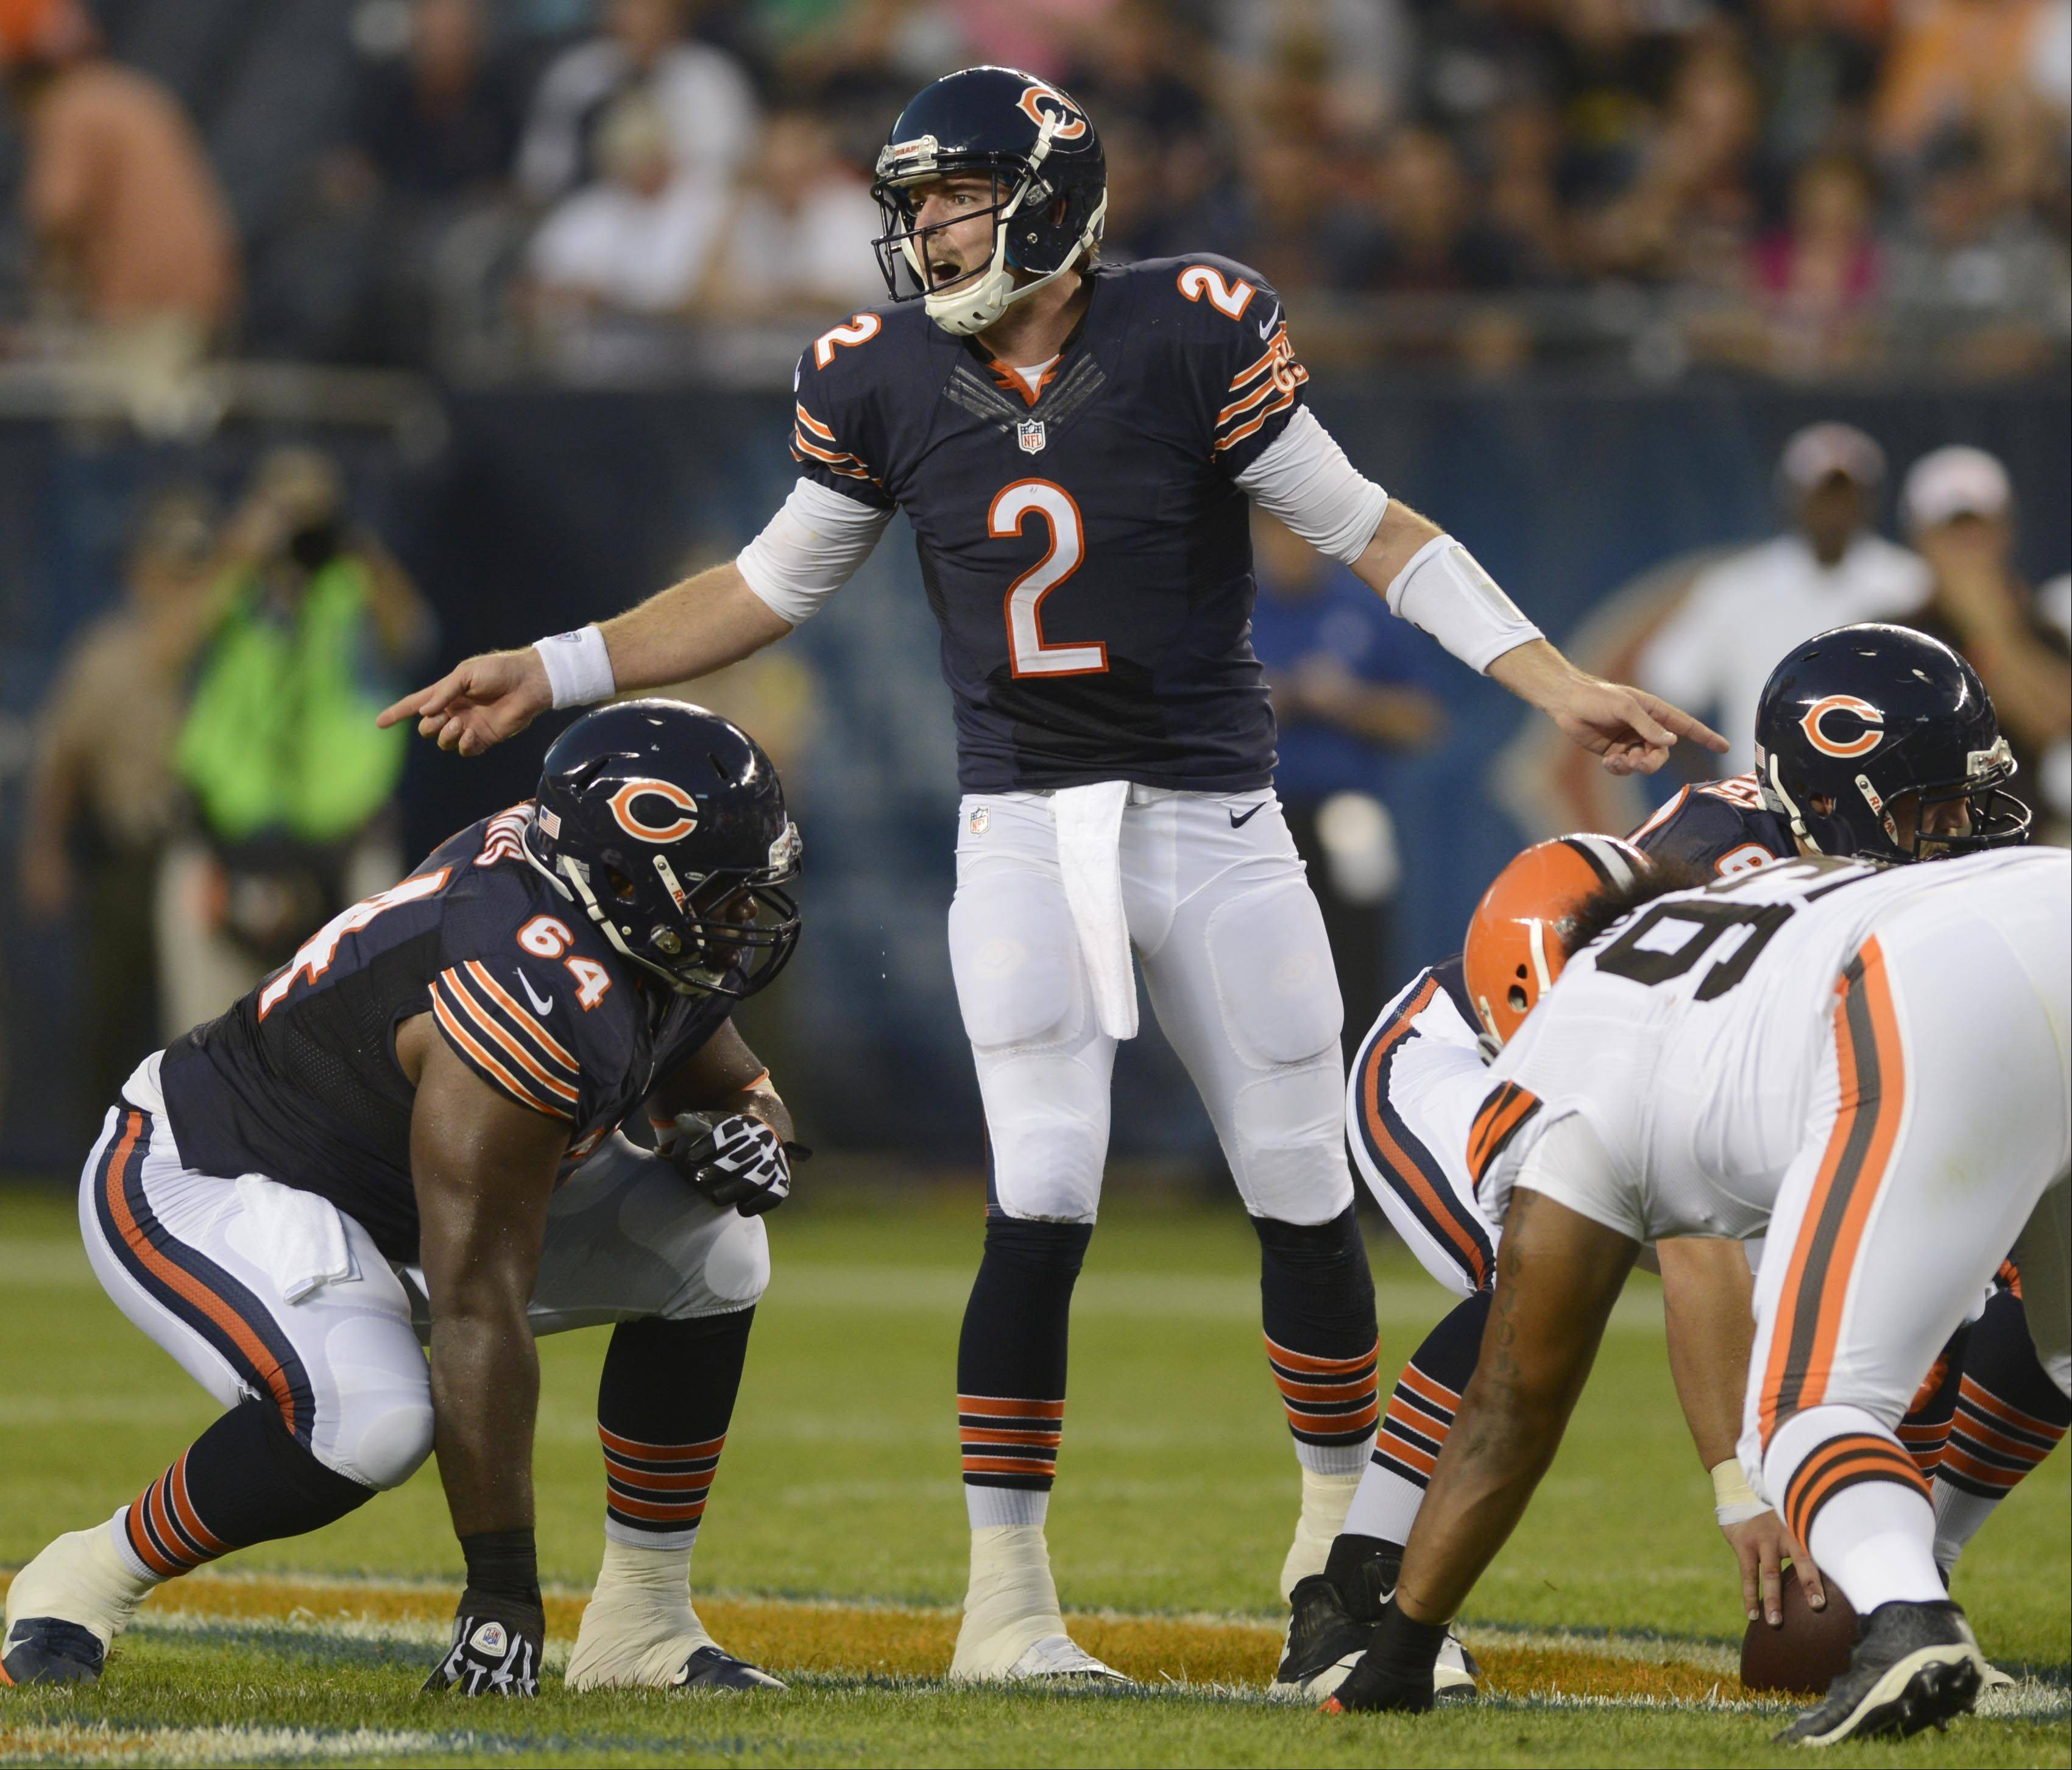 Chicago Bears quarterback Jordan Palmer, who threw for 111 yards against the Cleveland Browns Thursday in the Bears' final preseason game, was released by the team Friday.